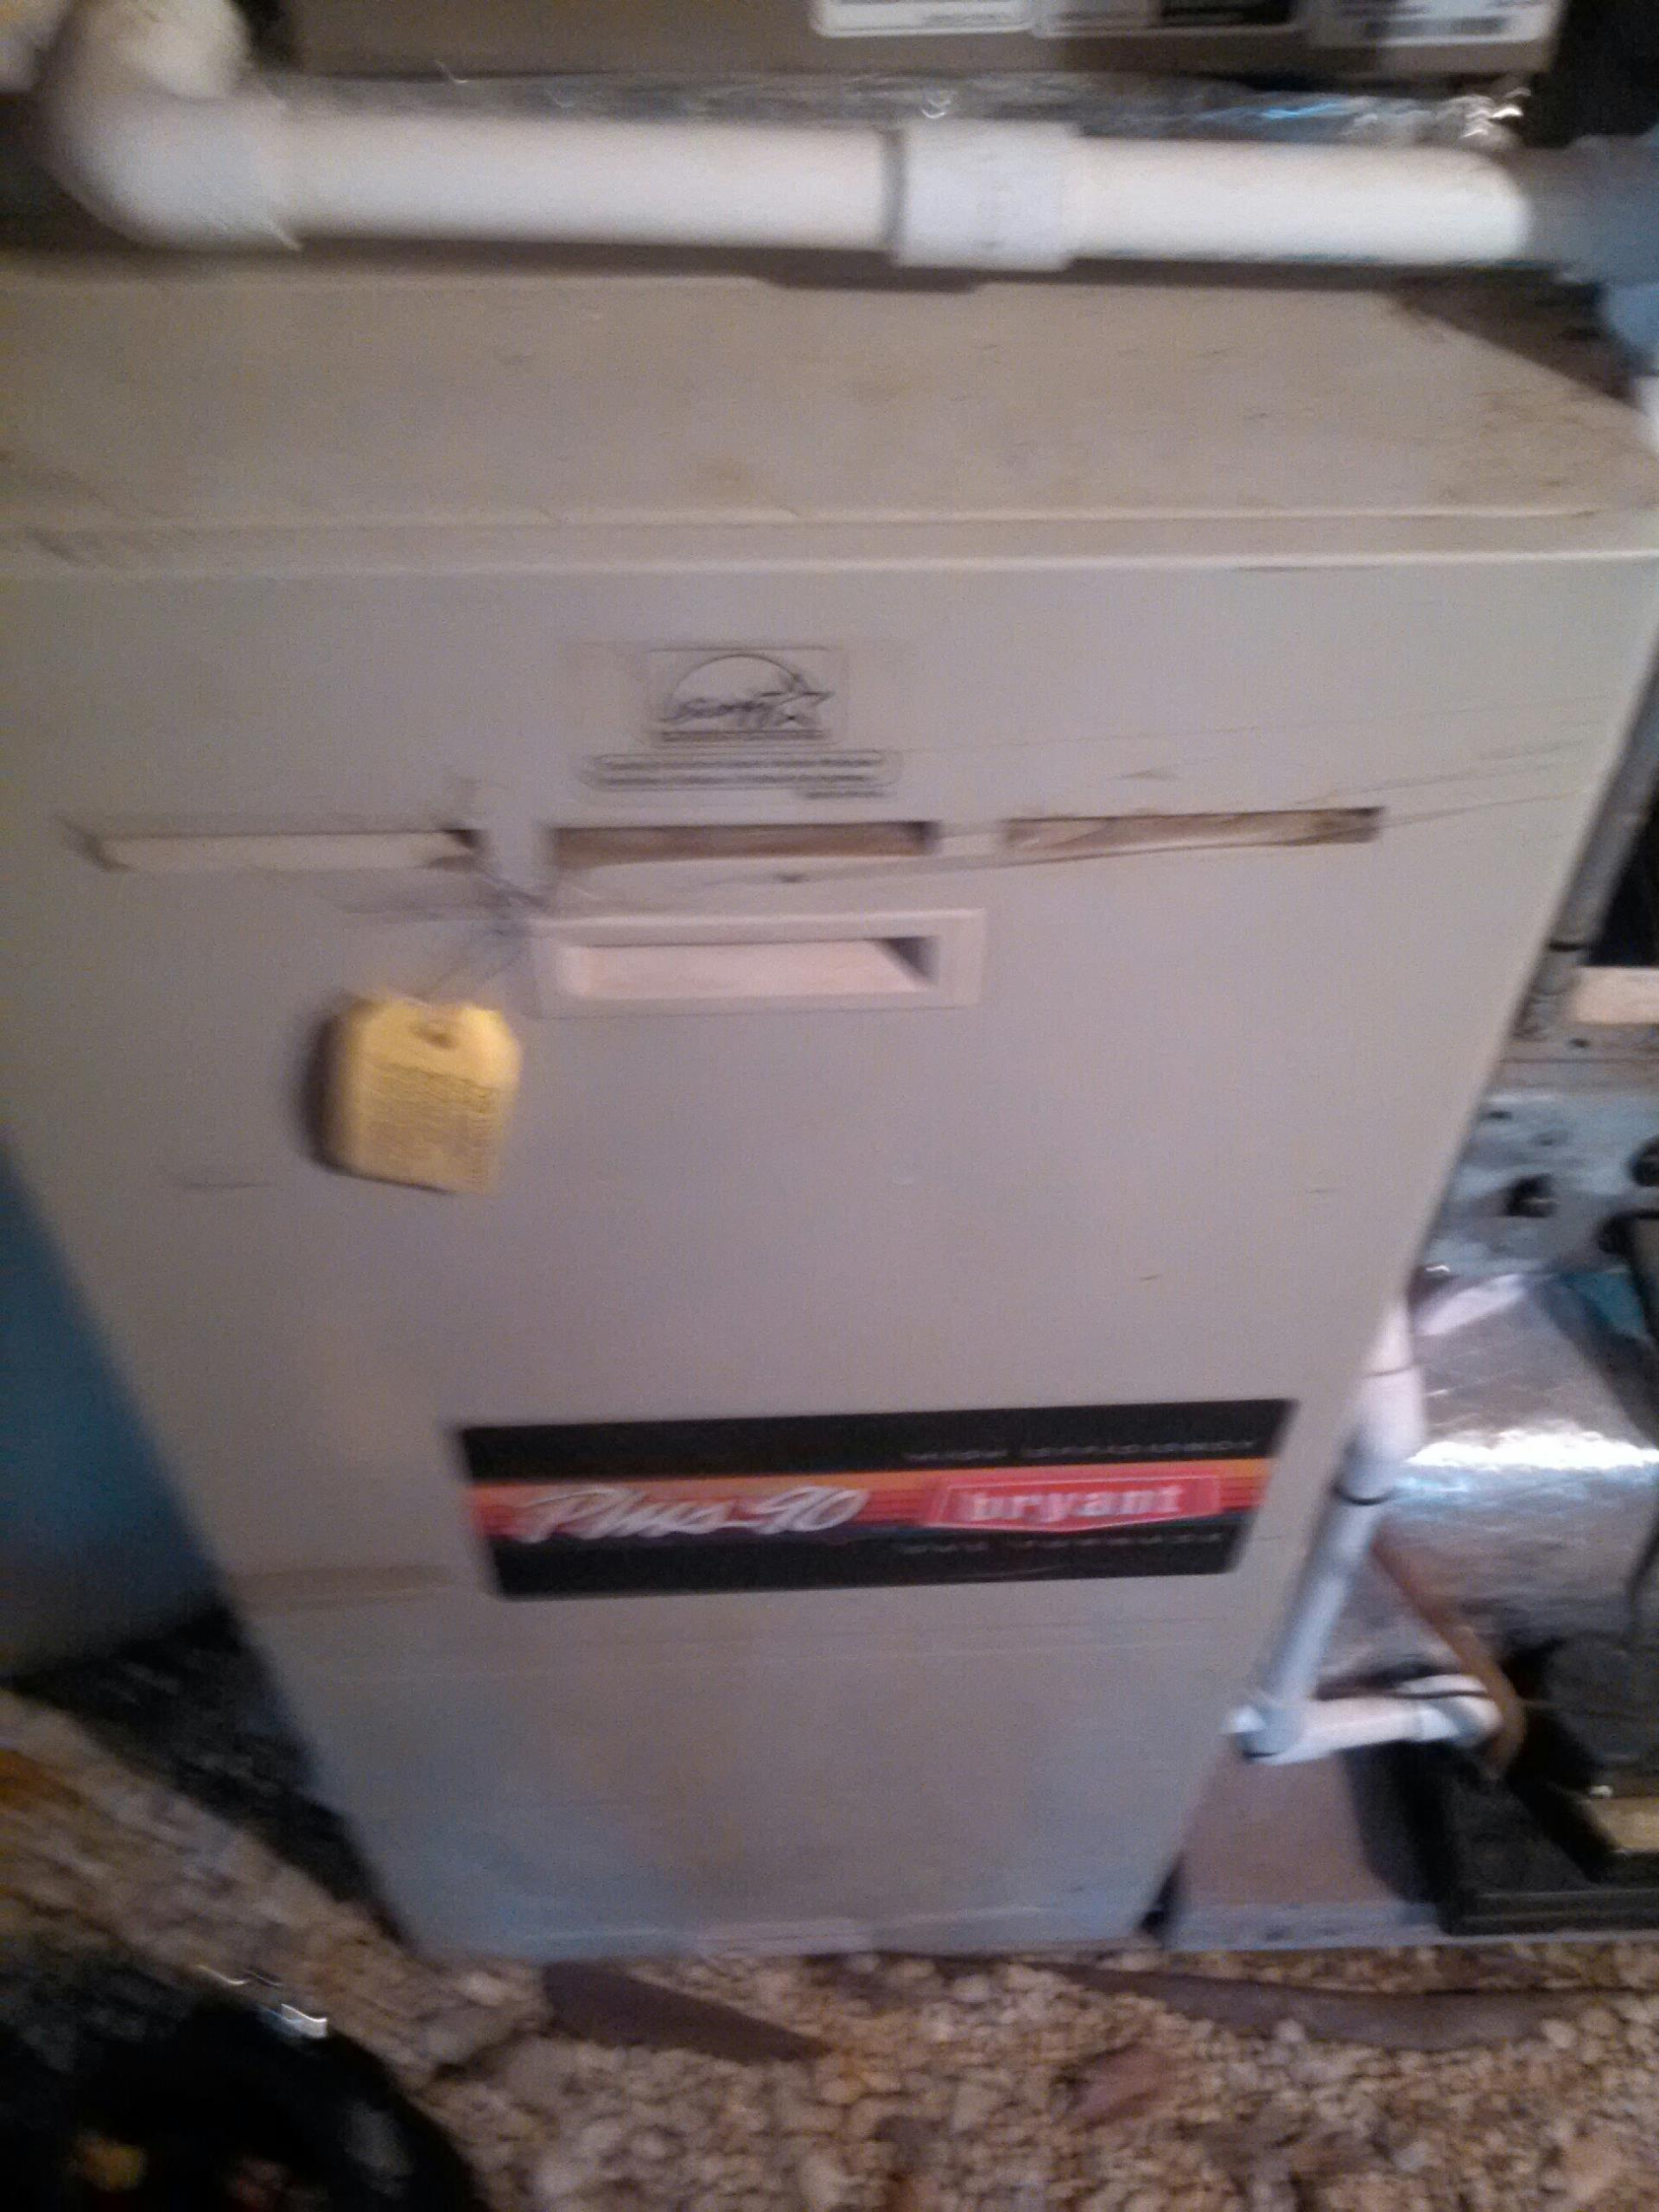 Gambrills, MD - Bryant Plus 90 gas furnace heating & AC system, Bradford White gas hot water heater replacement installation & plumbing repair service call in Gambrills Maryland 21054.